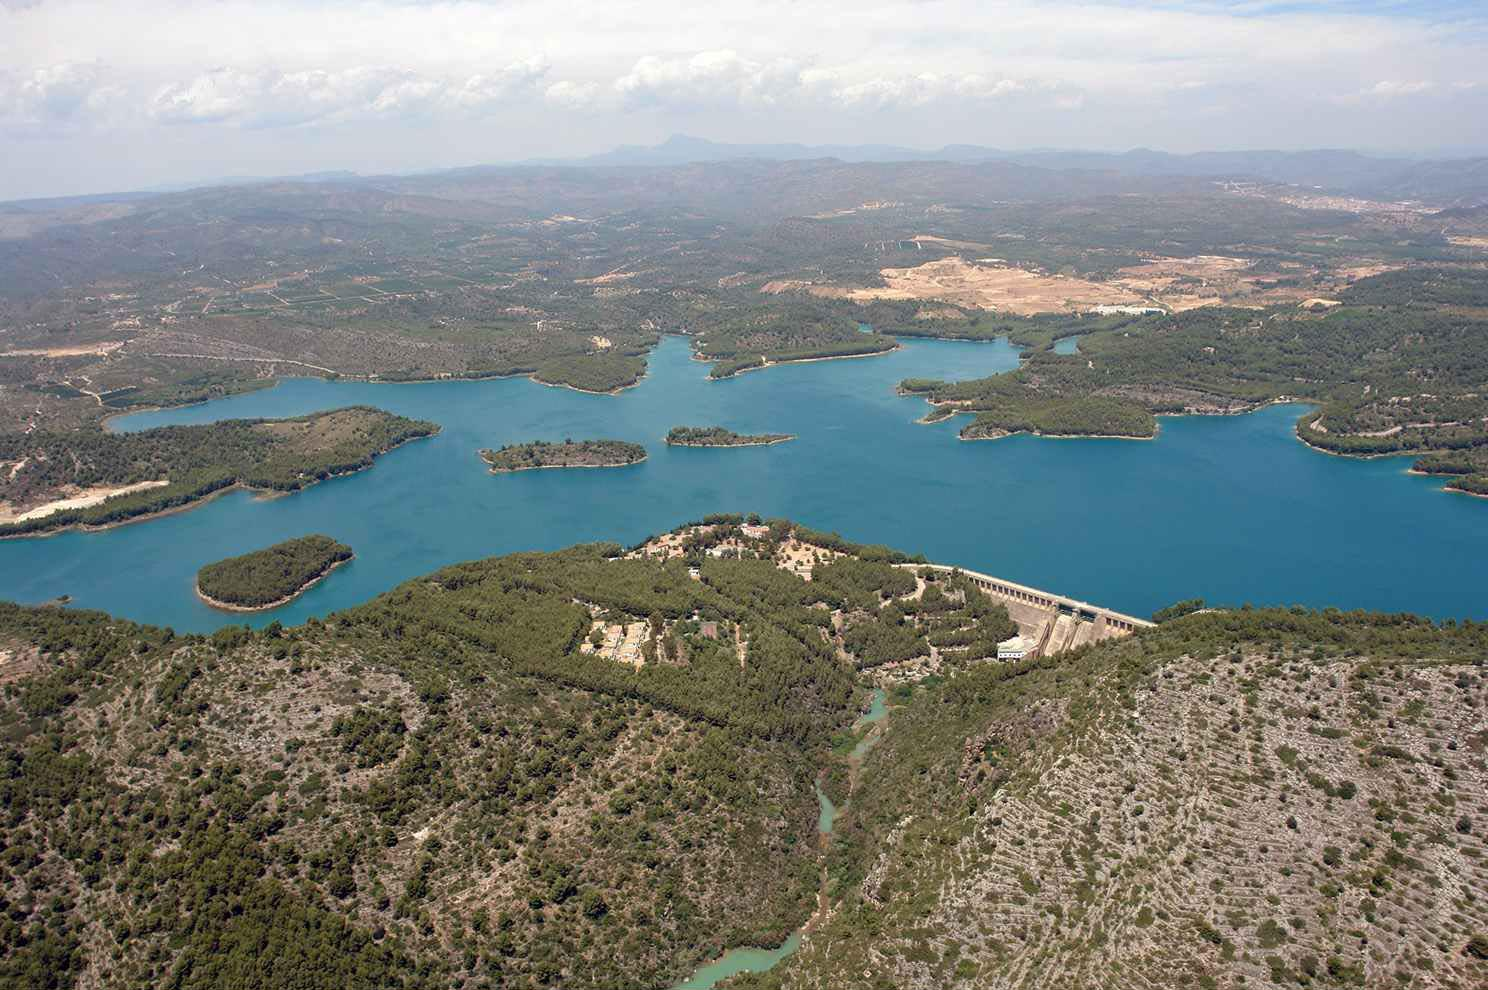 http://zeppeline.es/wp-content/uploads/2015/09/vista-aerea-de-embalse-video-fotografia-aerea1.jpg